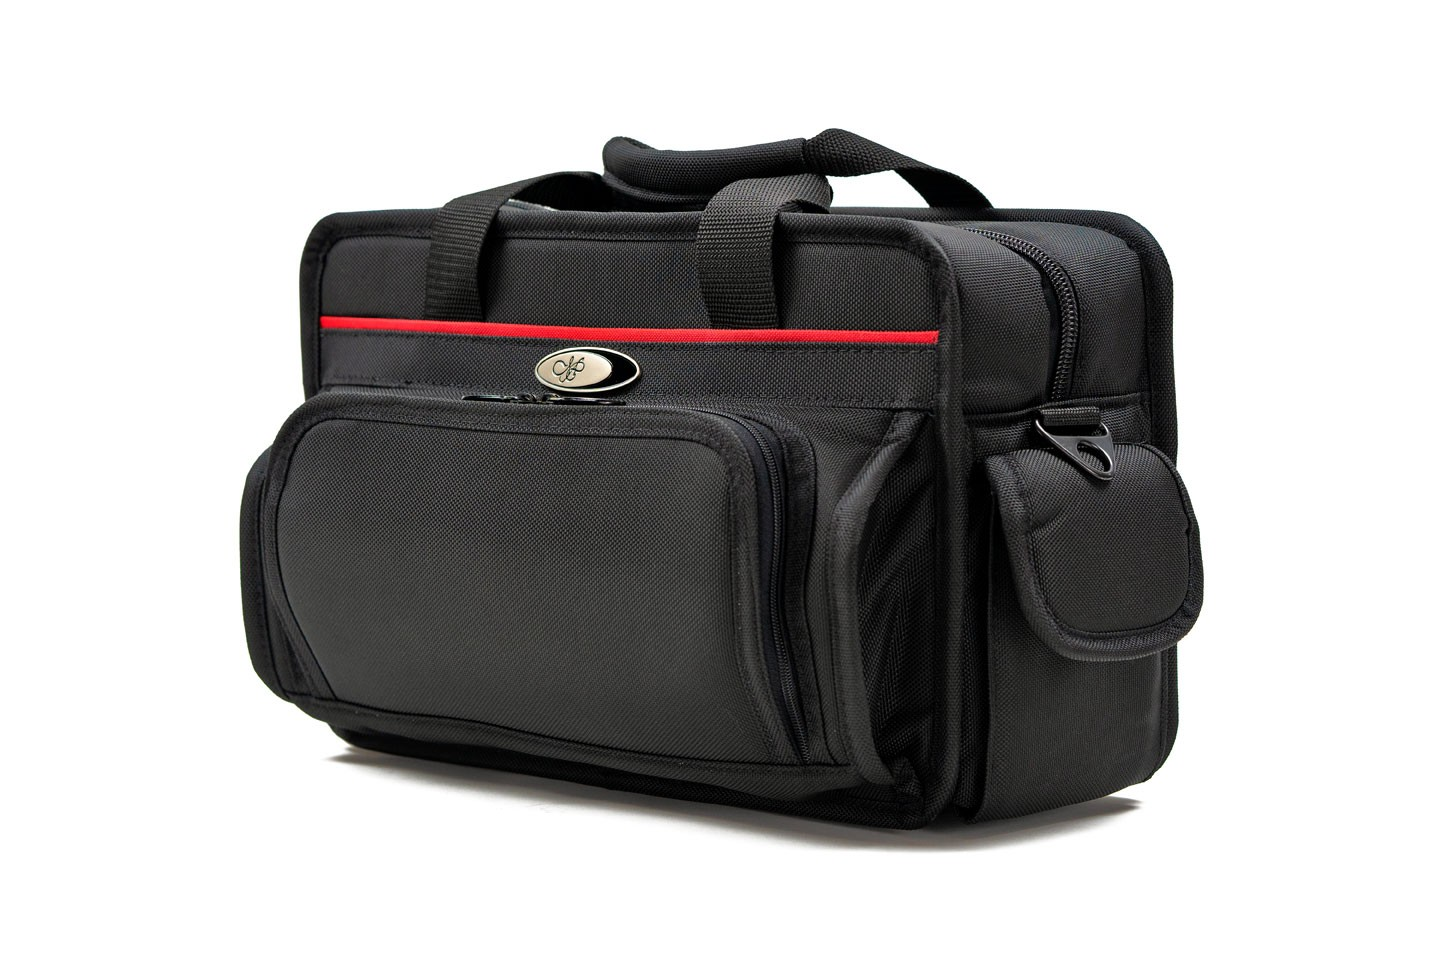 <h1>CAMCB-02</h1><p>Small Camera Carry Bag</p>